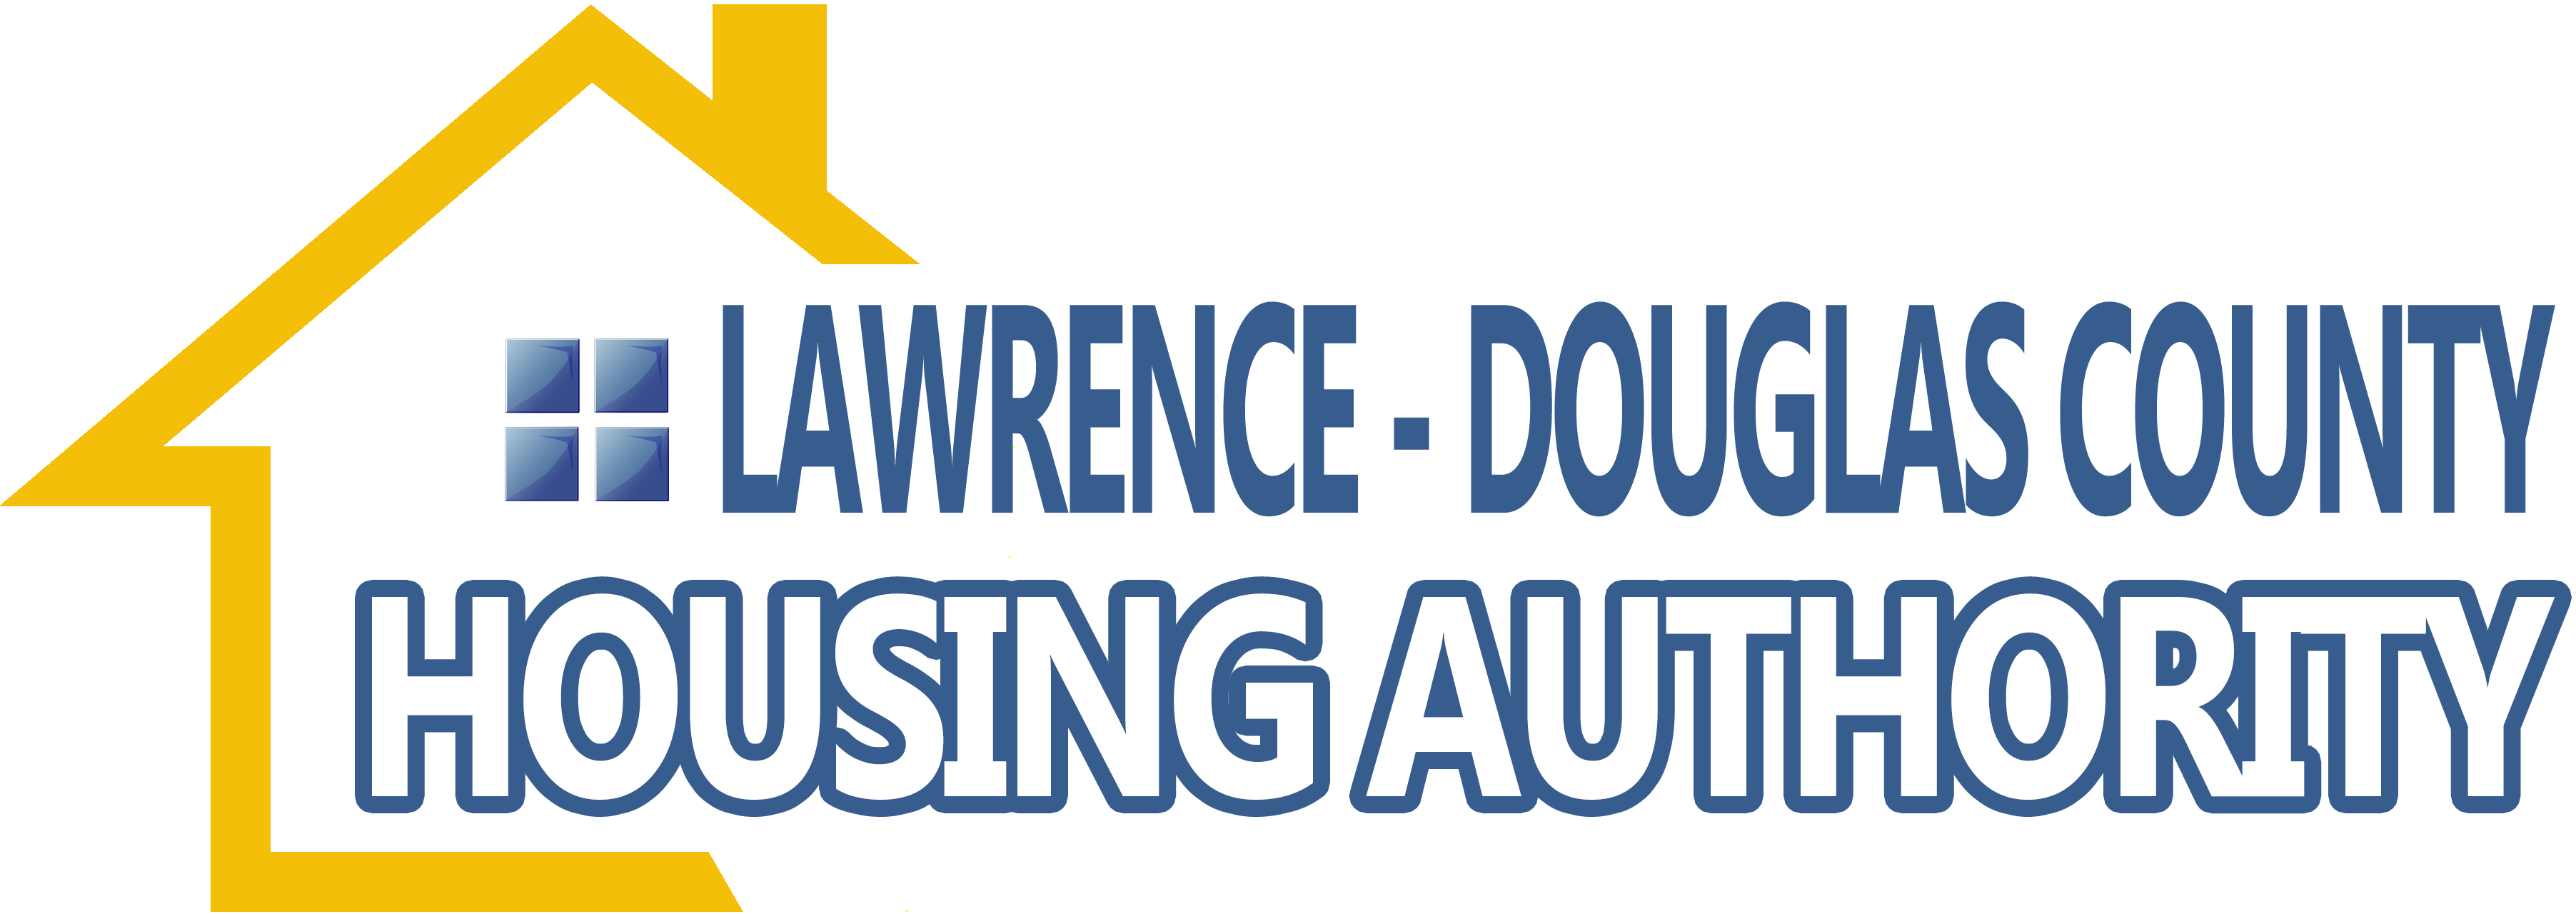 Lawrence/Douglas County Housing Authority